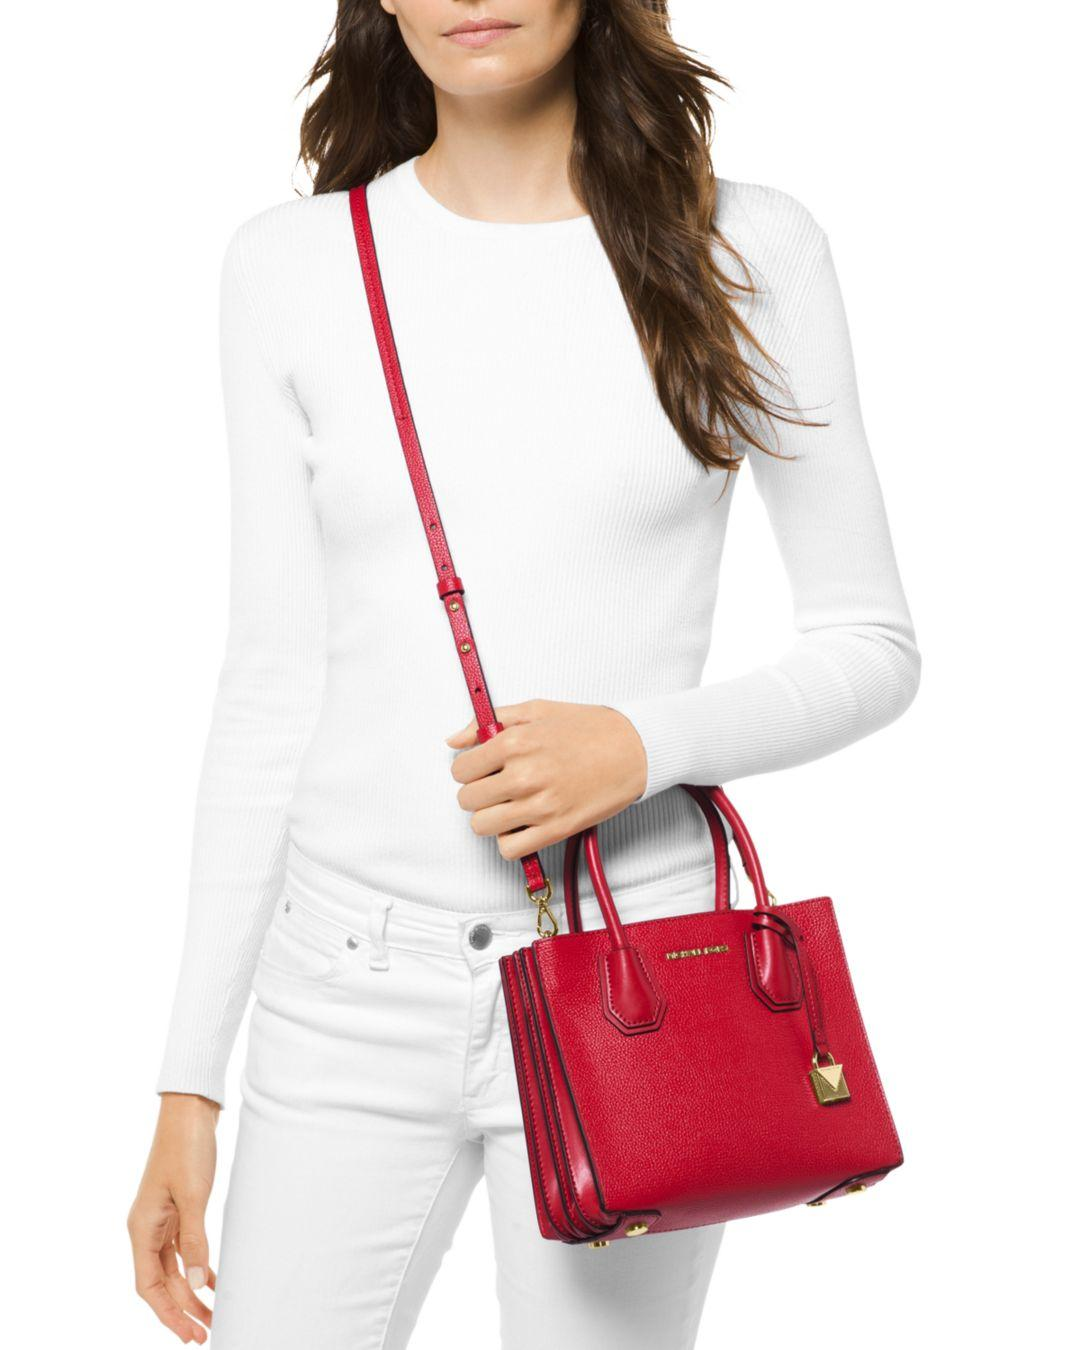 62771a4389a1 Lyst - Michael Kors Michael Mercer Pebble Leather Accordion Crossbody in Red